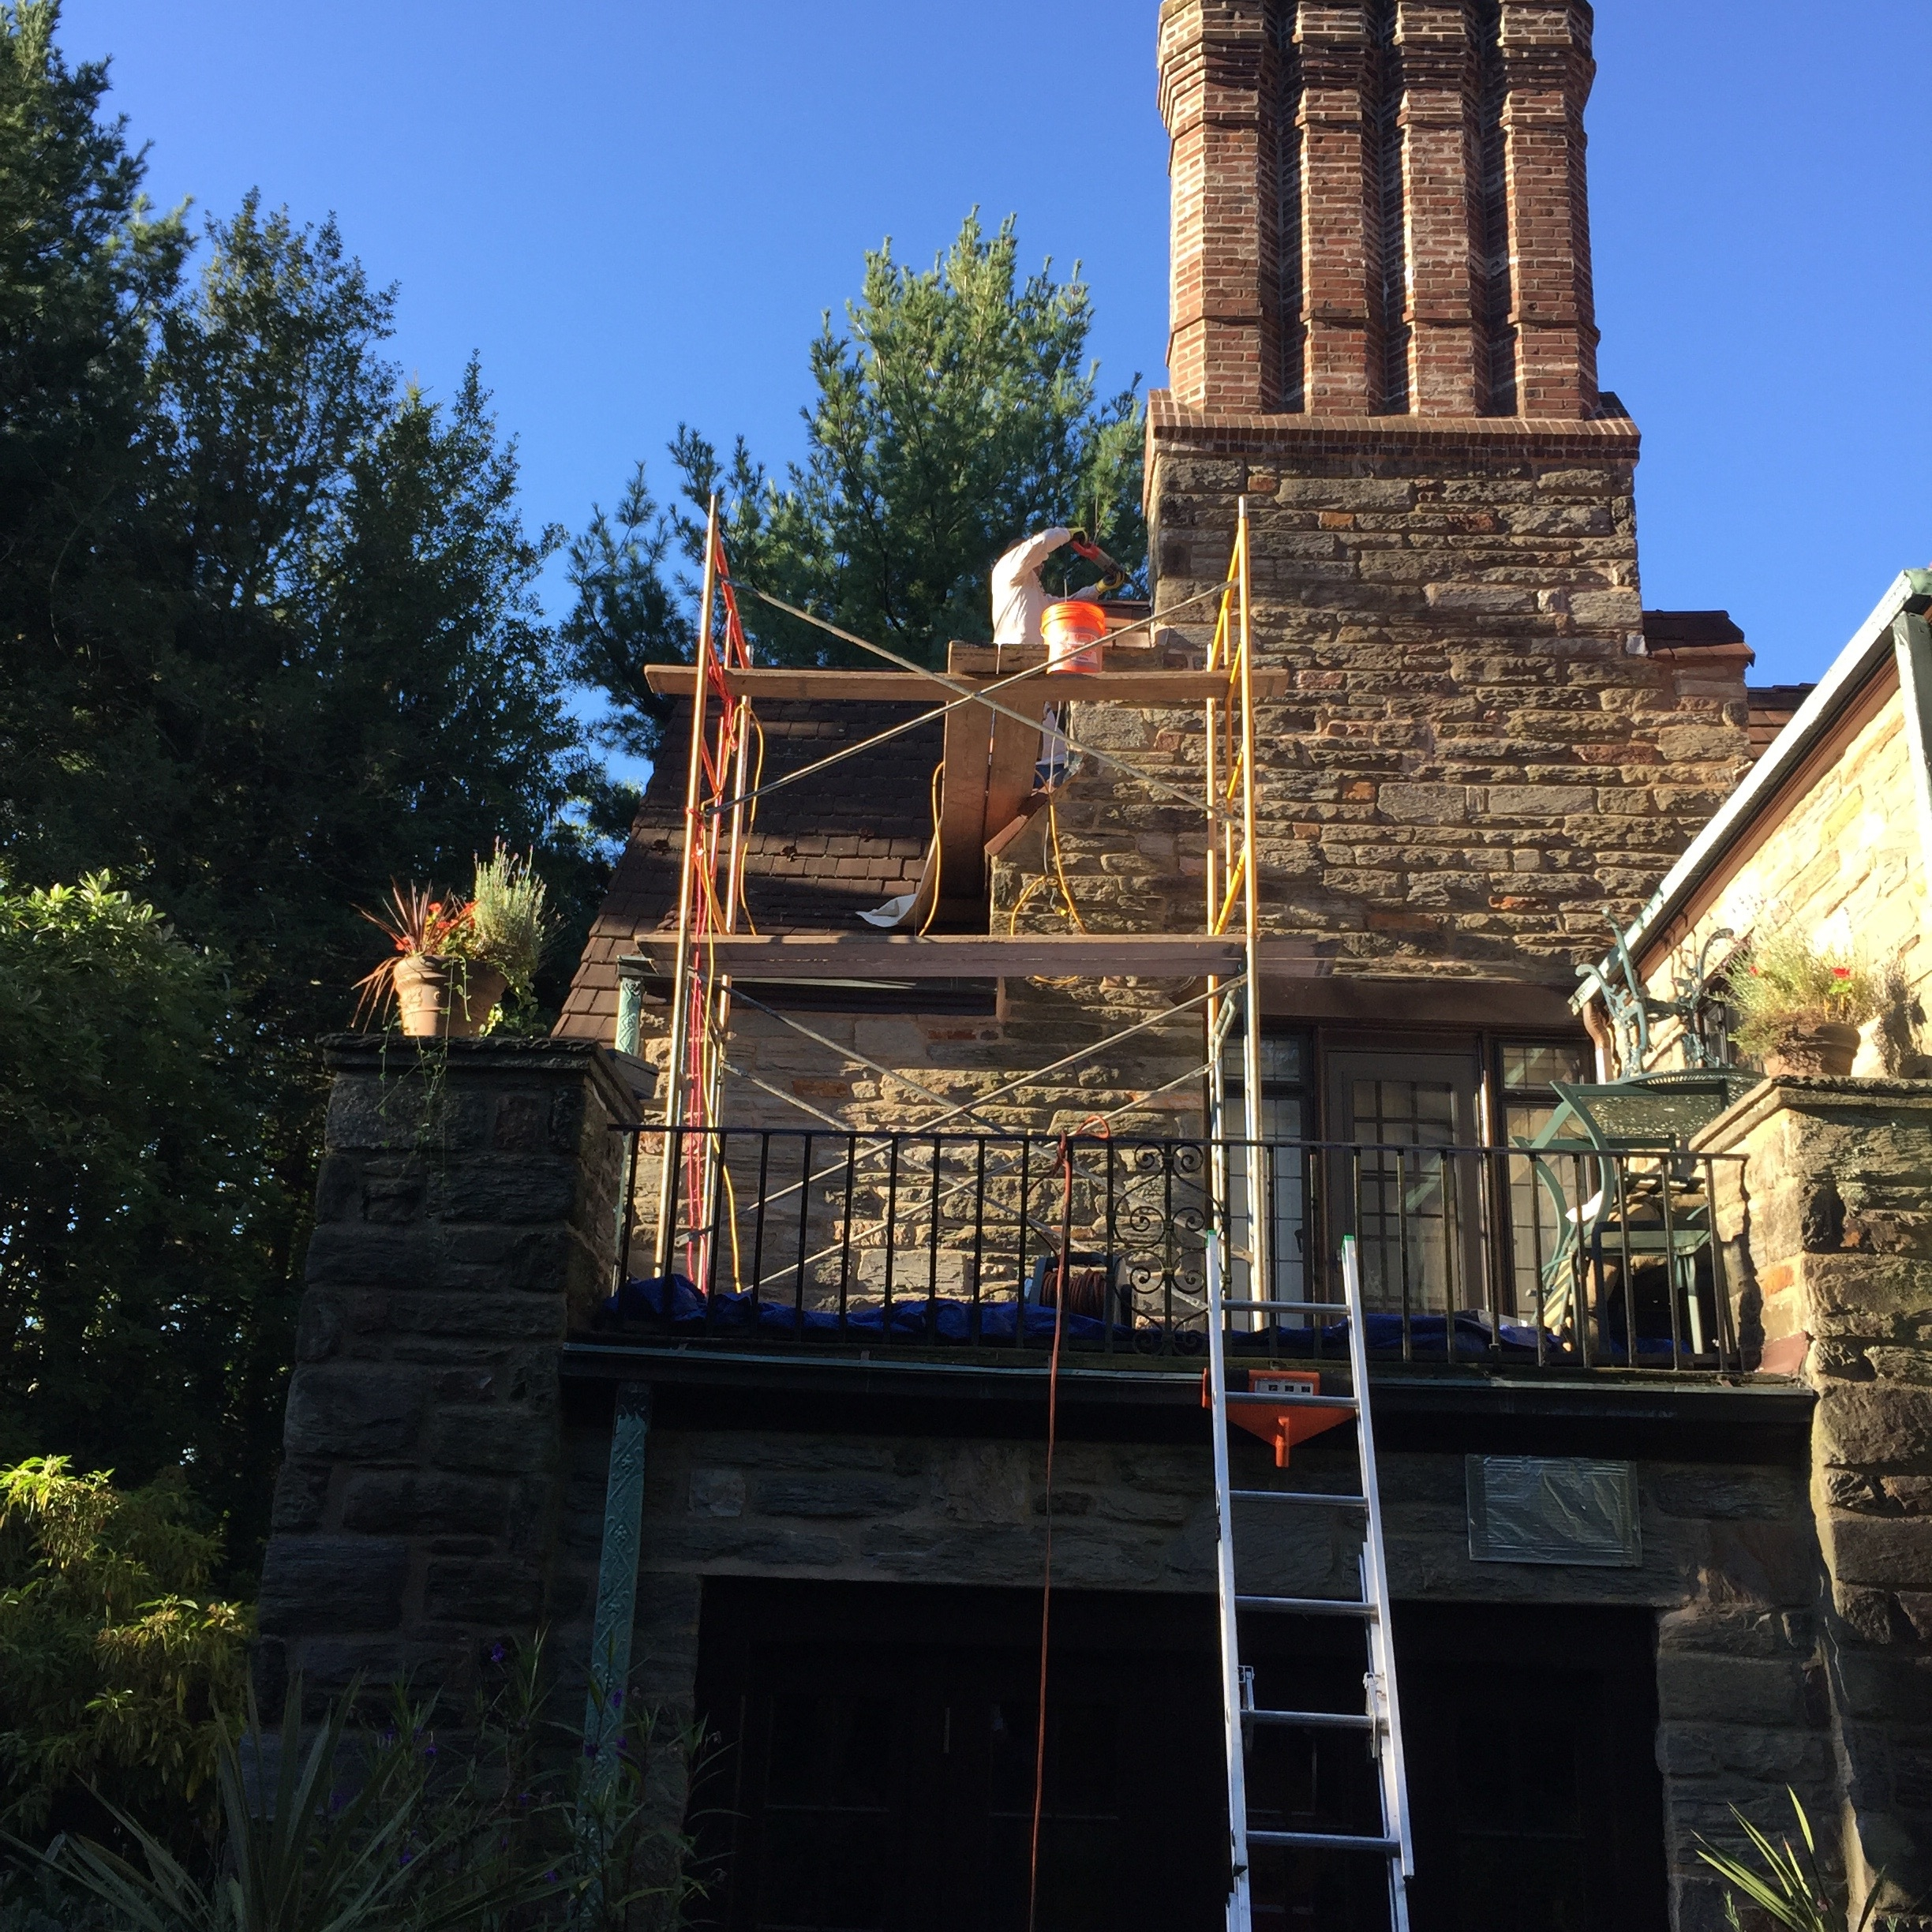 """We love working on ornamental chimneys, both for their beauty and because they are almost always repaired incorrectly. In this case, the chimney was so large and complicated that the previous """"Internet"""" contractor neither reglet cut flashing into the masonry nor built a proper cricket (a triangular-prism-looking copper structure that separates the back of the chimney from the roof slope), so water flooded in through the caulked voids. We corrected such errors, as well as replaced any broken or missing Ludowici heritage shingle tiles around the flashing and elsewhere."""